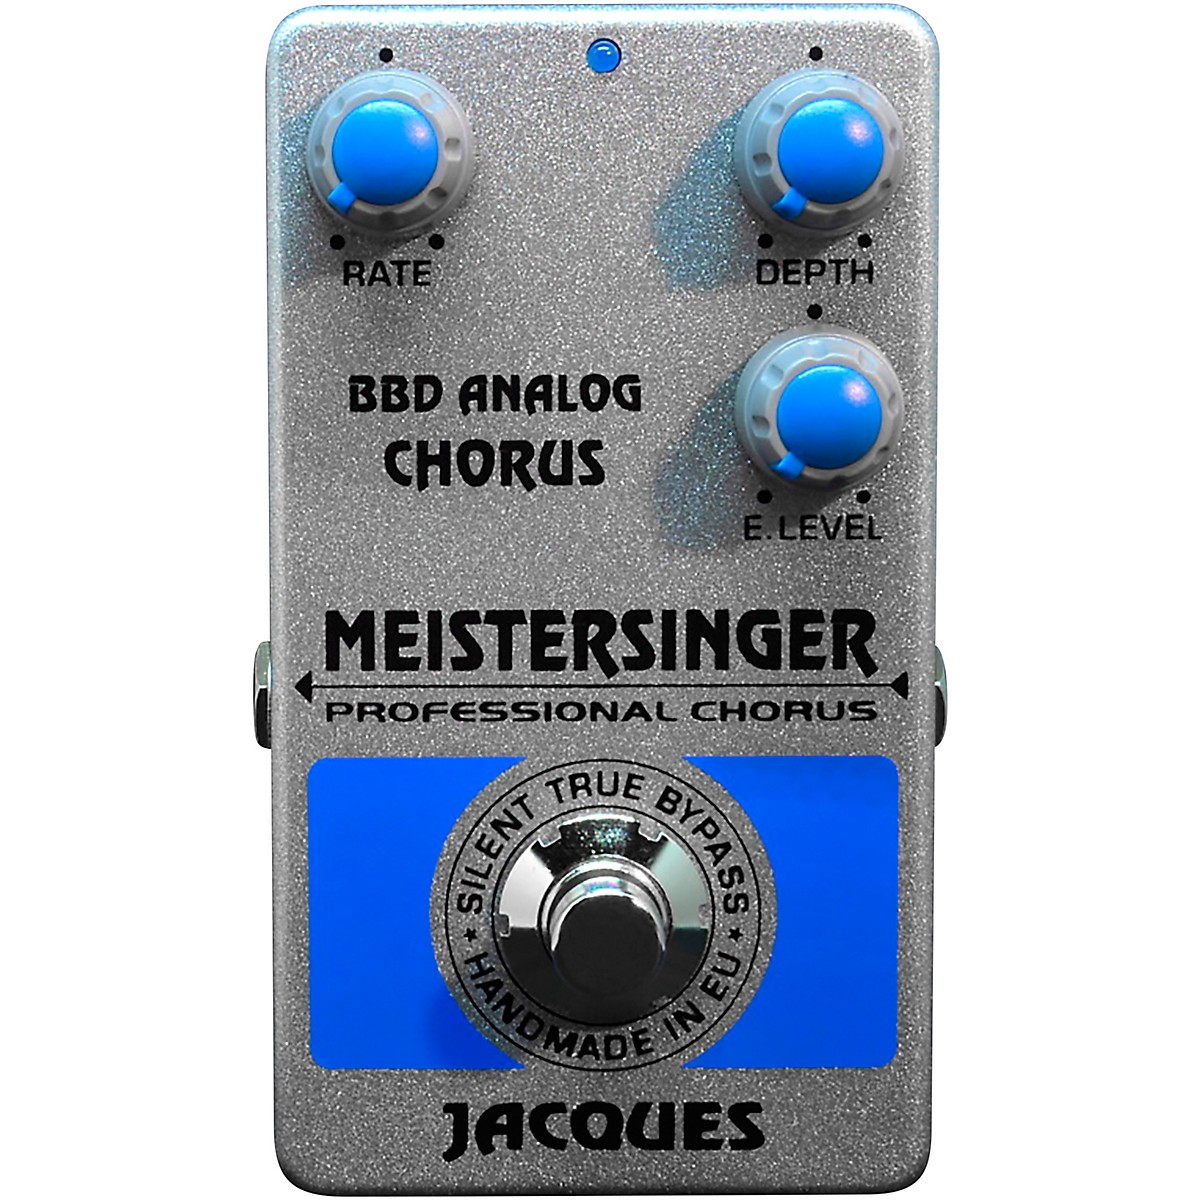 Jacques MS-2 MeisterSinger Analog Chorus Pedal